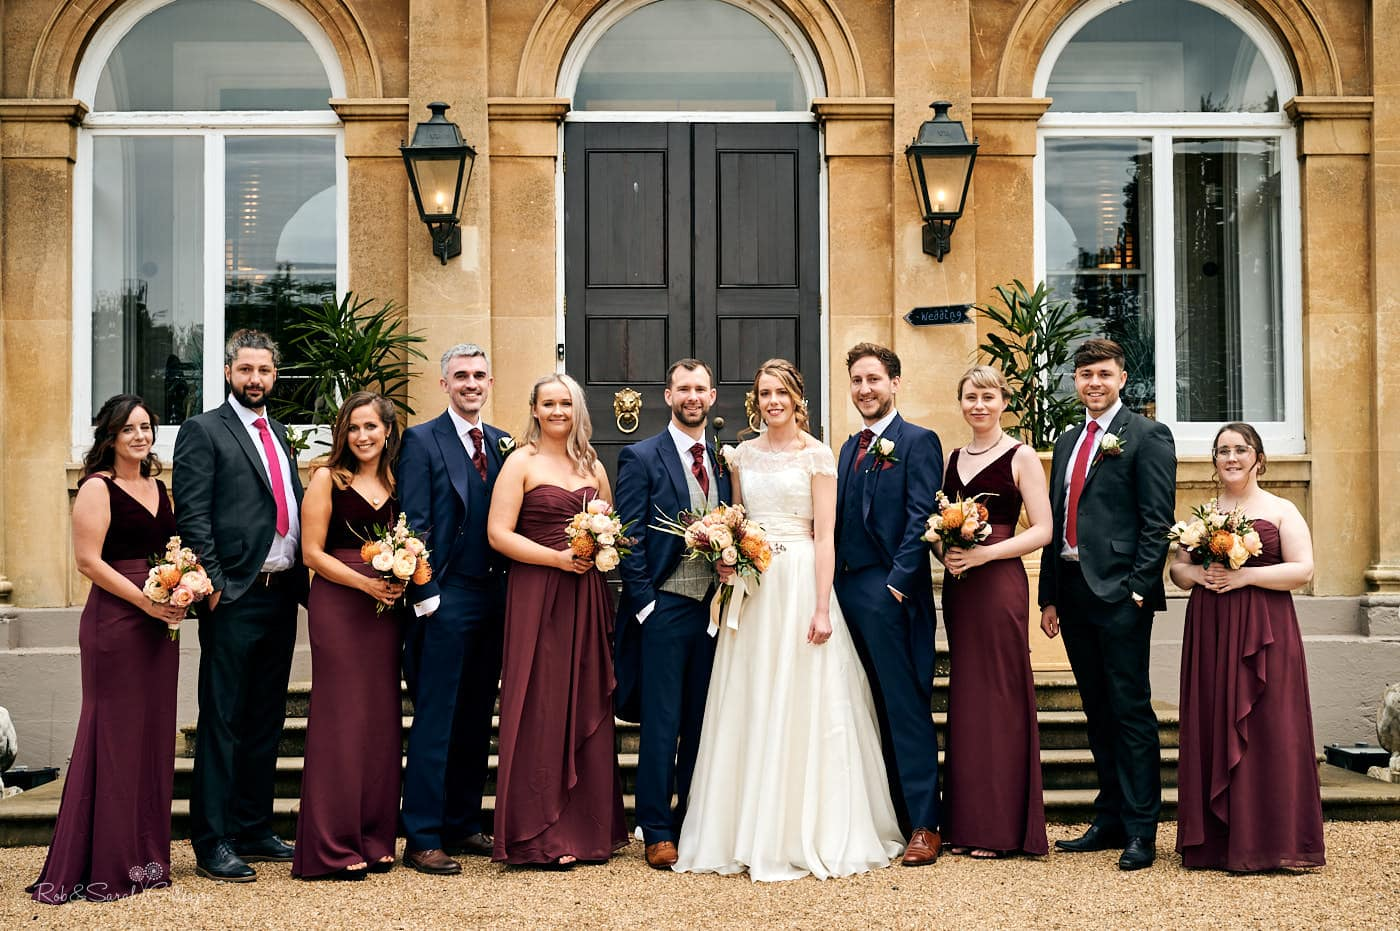 Group photo of bridal party outside Spring Grove House in Worcestershire